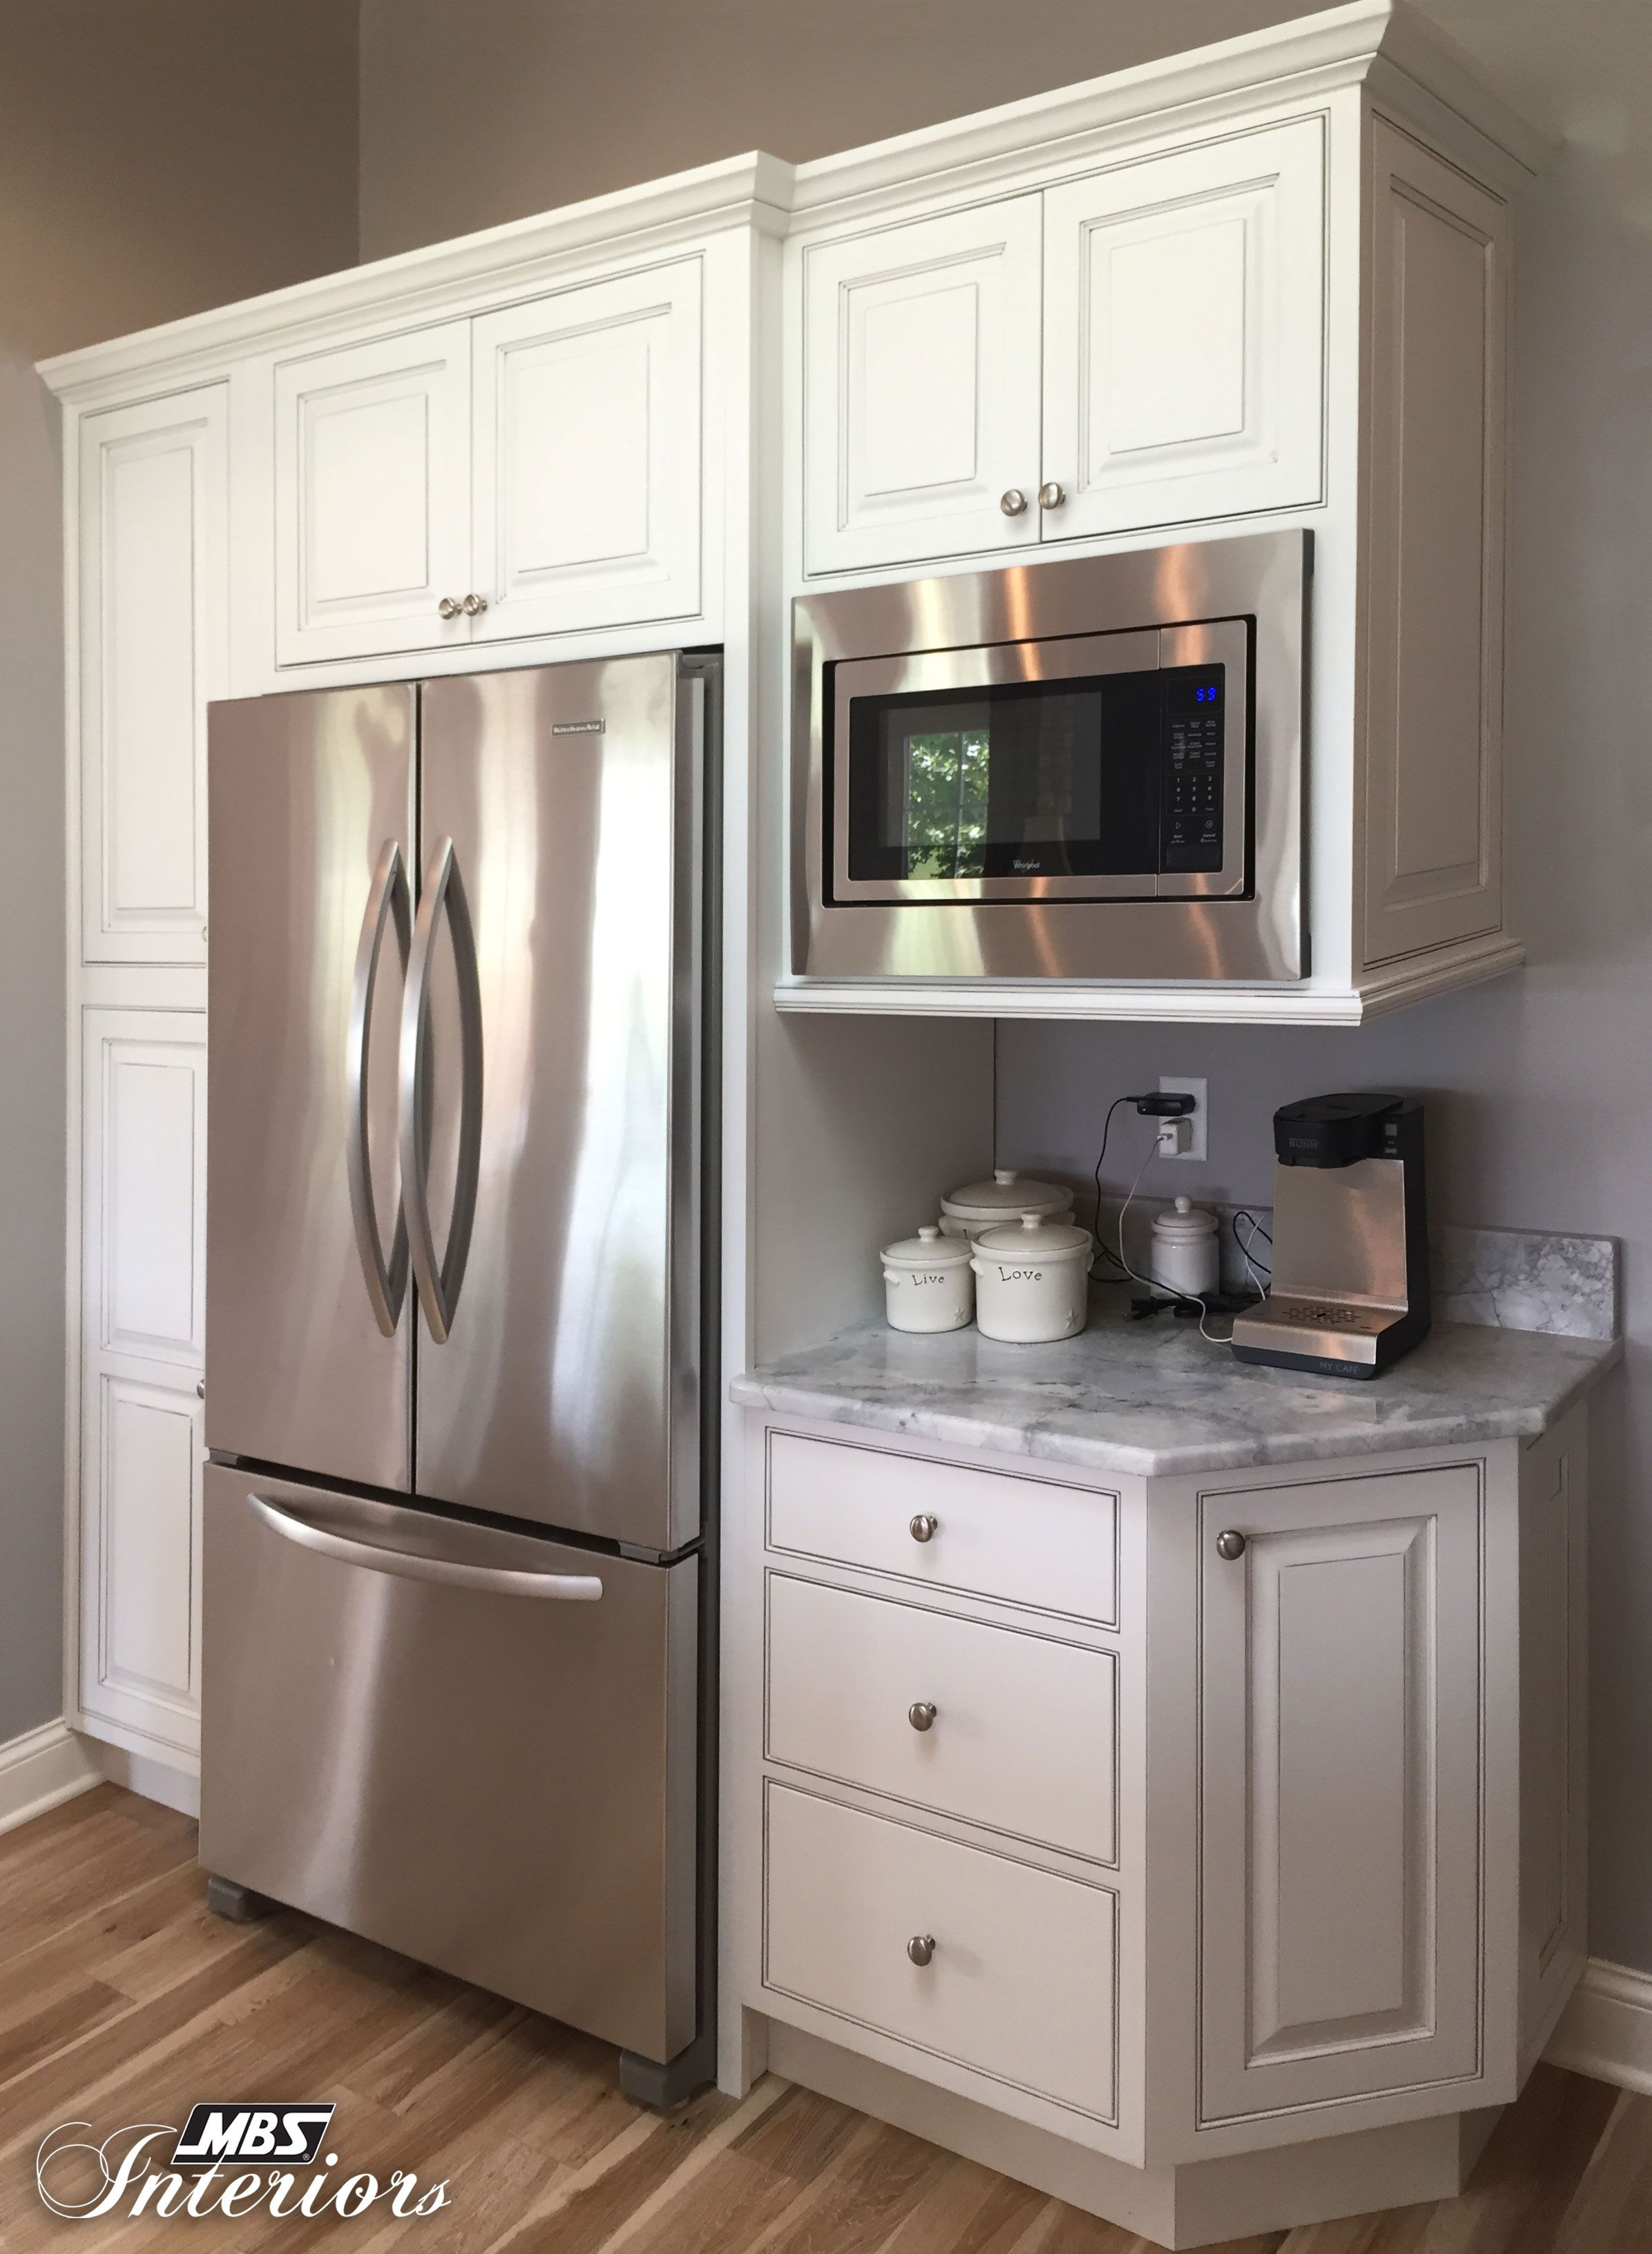 I Like The Microwave How It S Built Into The Cabinet And Separate From The Microwave Diy Kitchen Renovation New Kitchen Cabinets Kitchen Layout